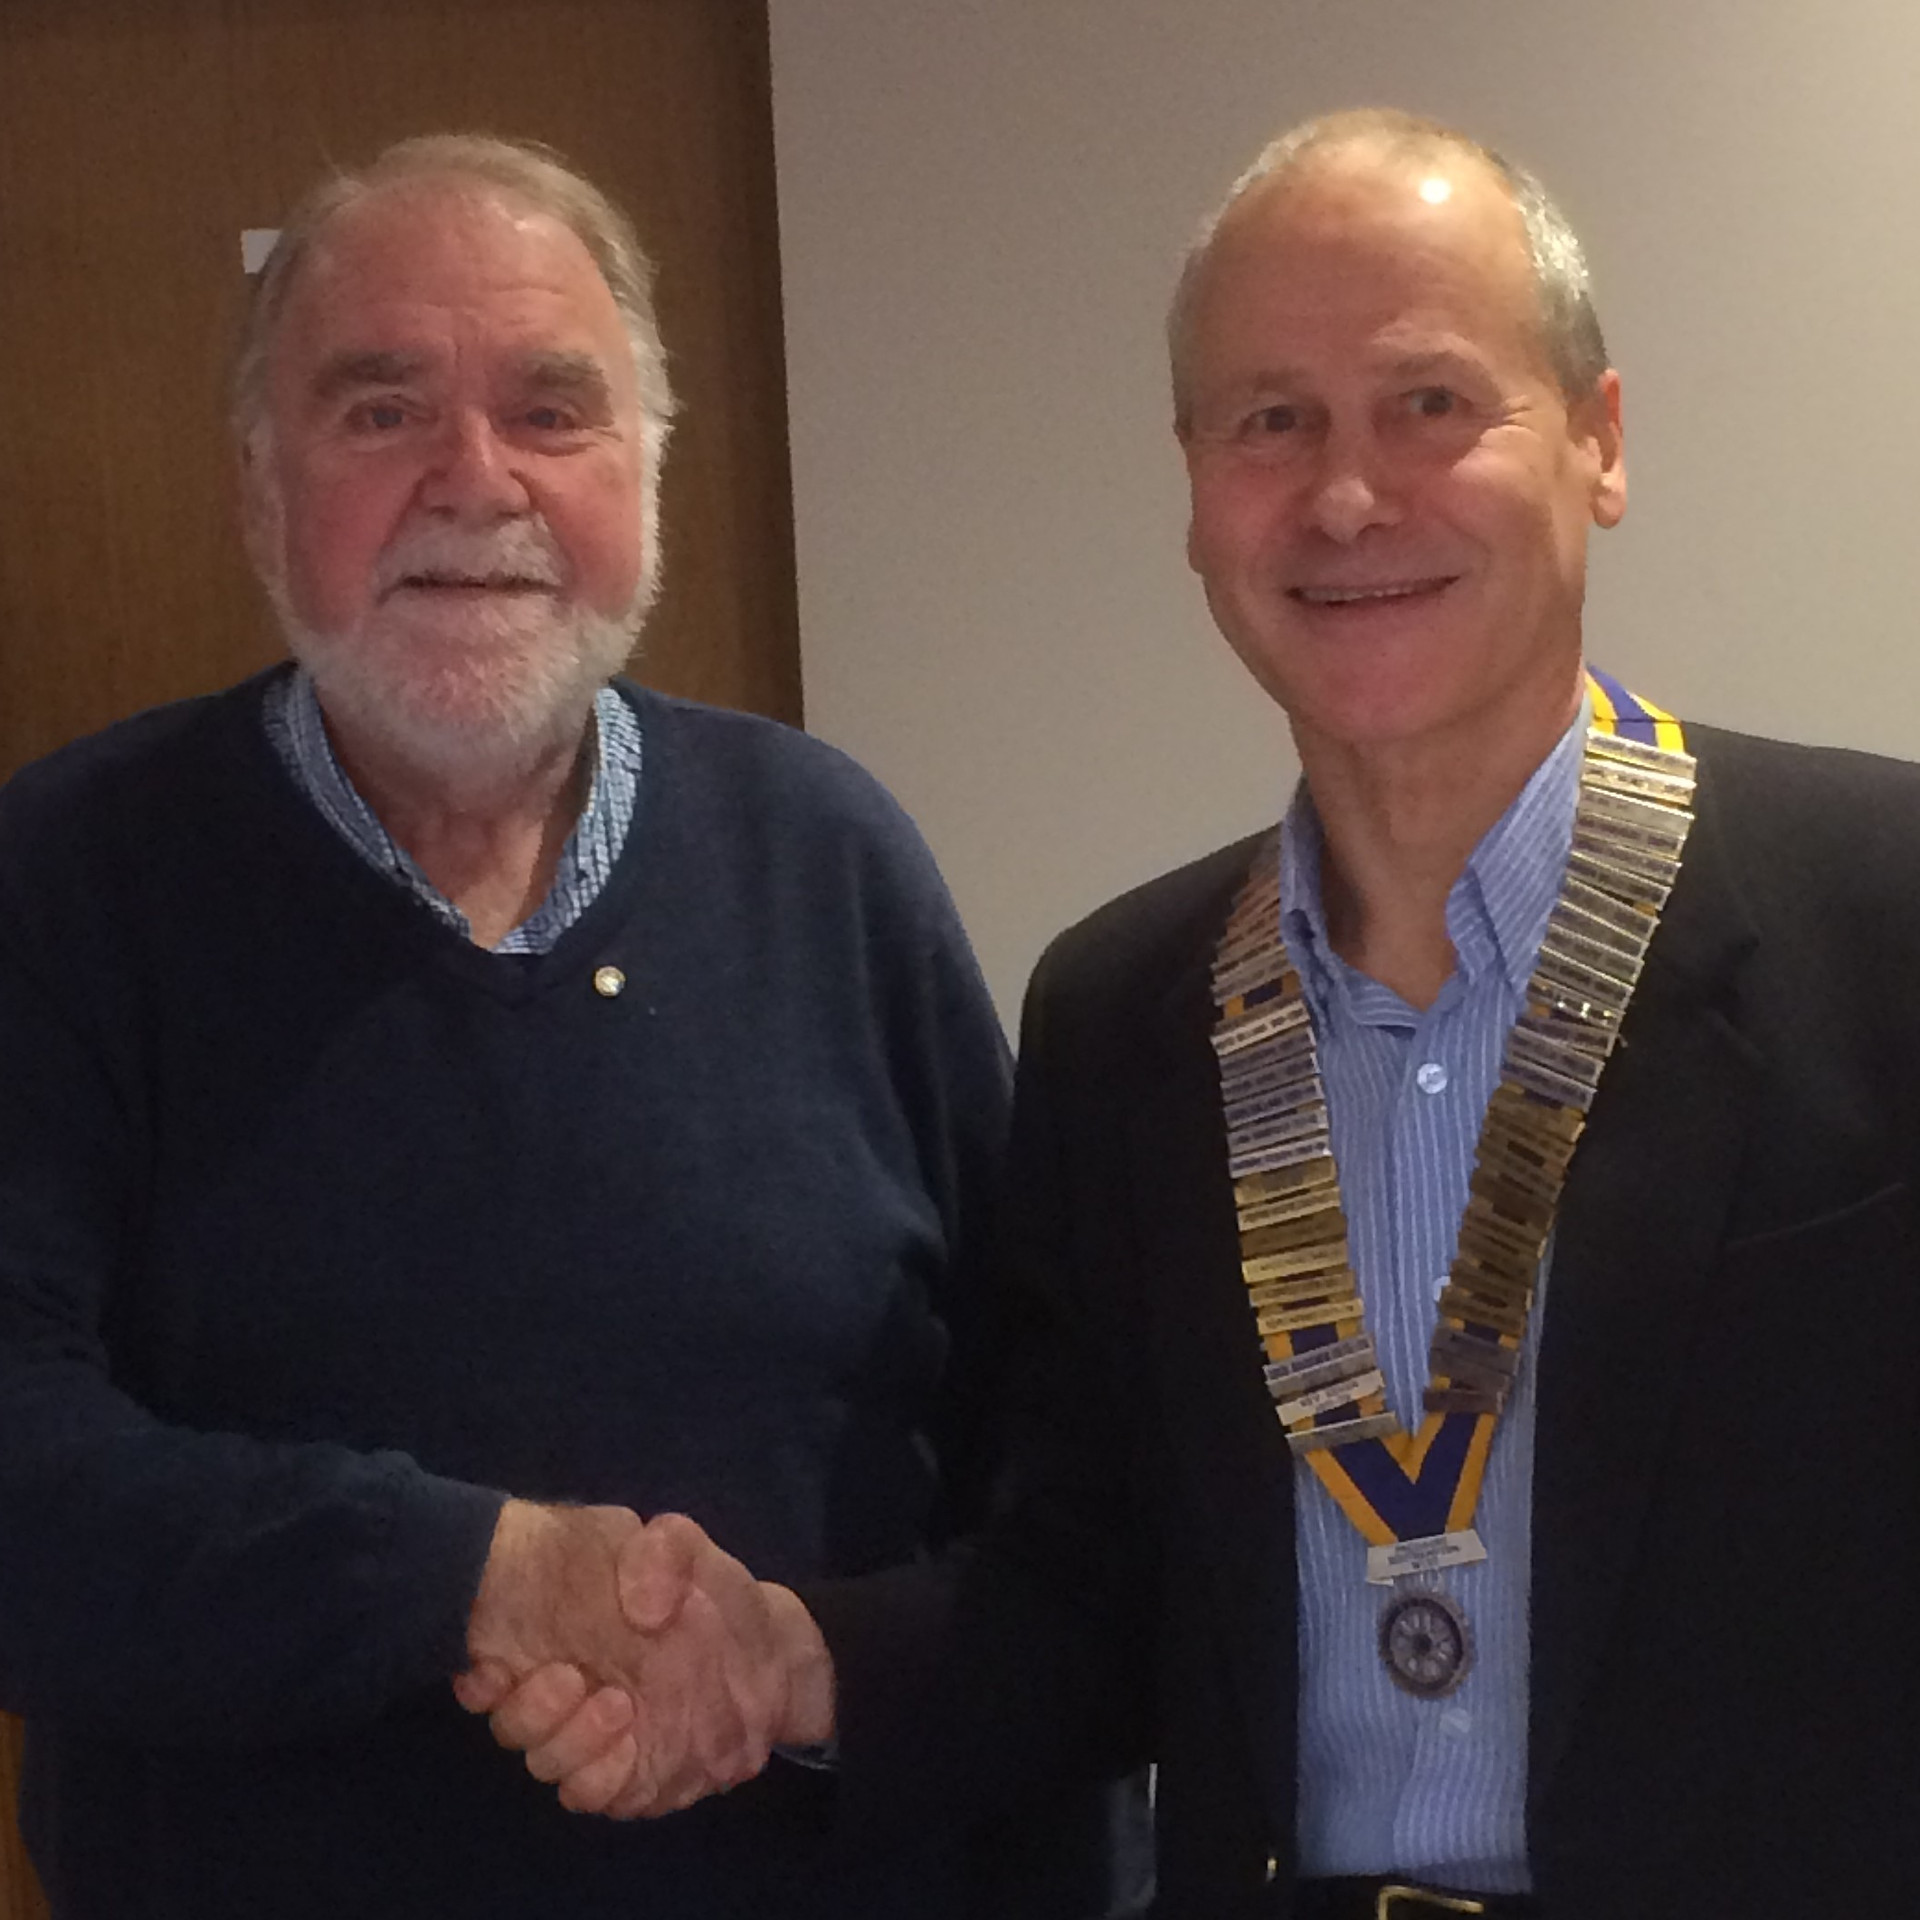 President Ralph welcomes new club member John Evett.